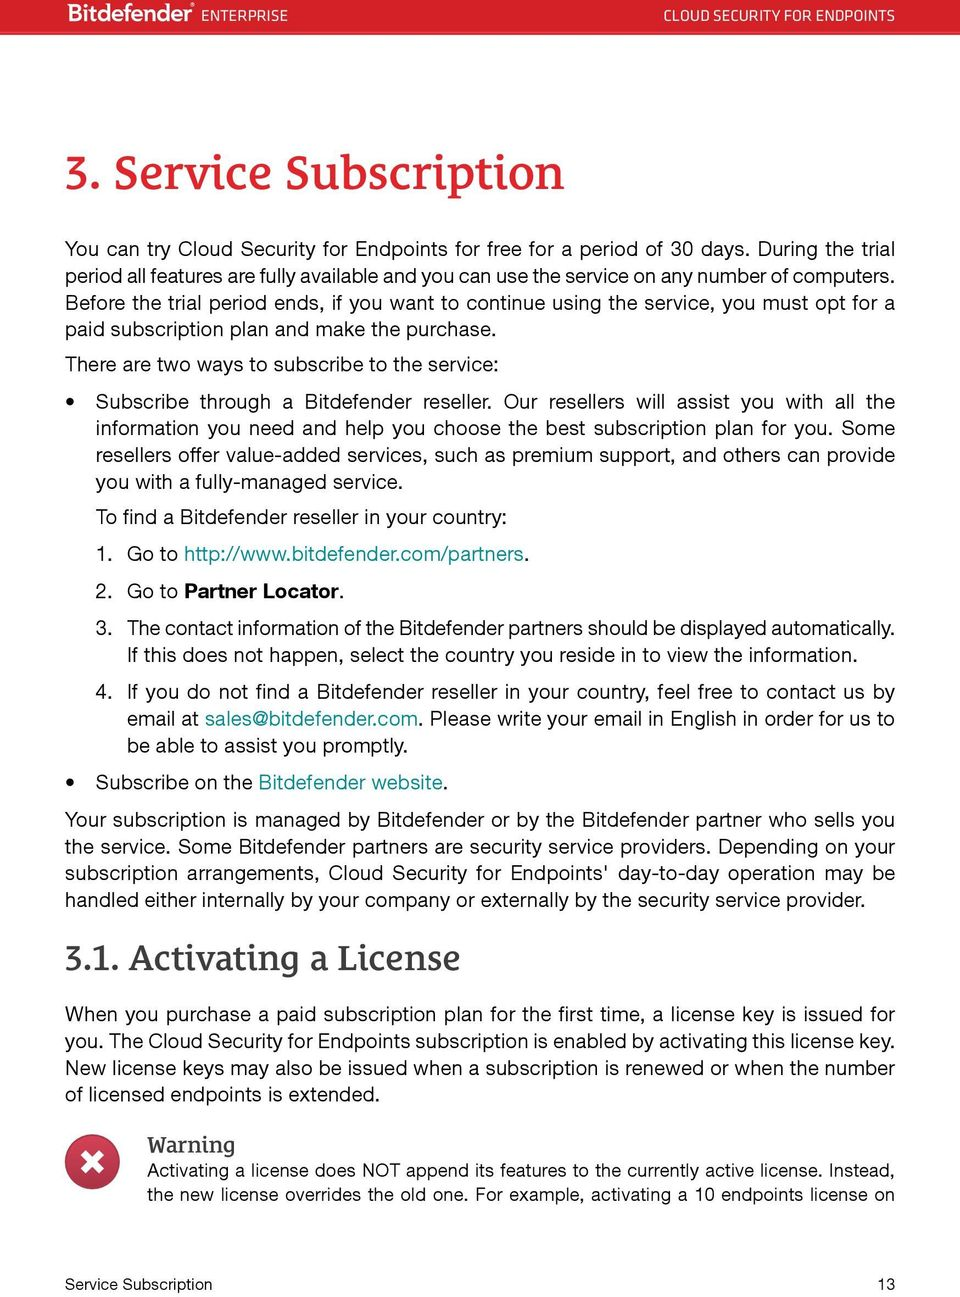 Before the trial period ends, if you want to continue using the service, you must opt for a paid subscription plan and make the purchase.